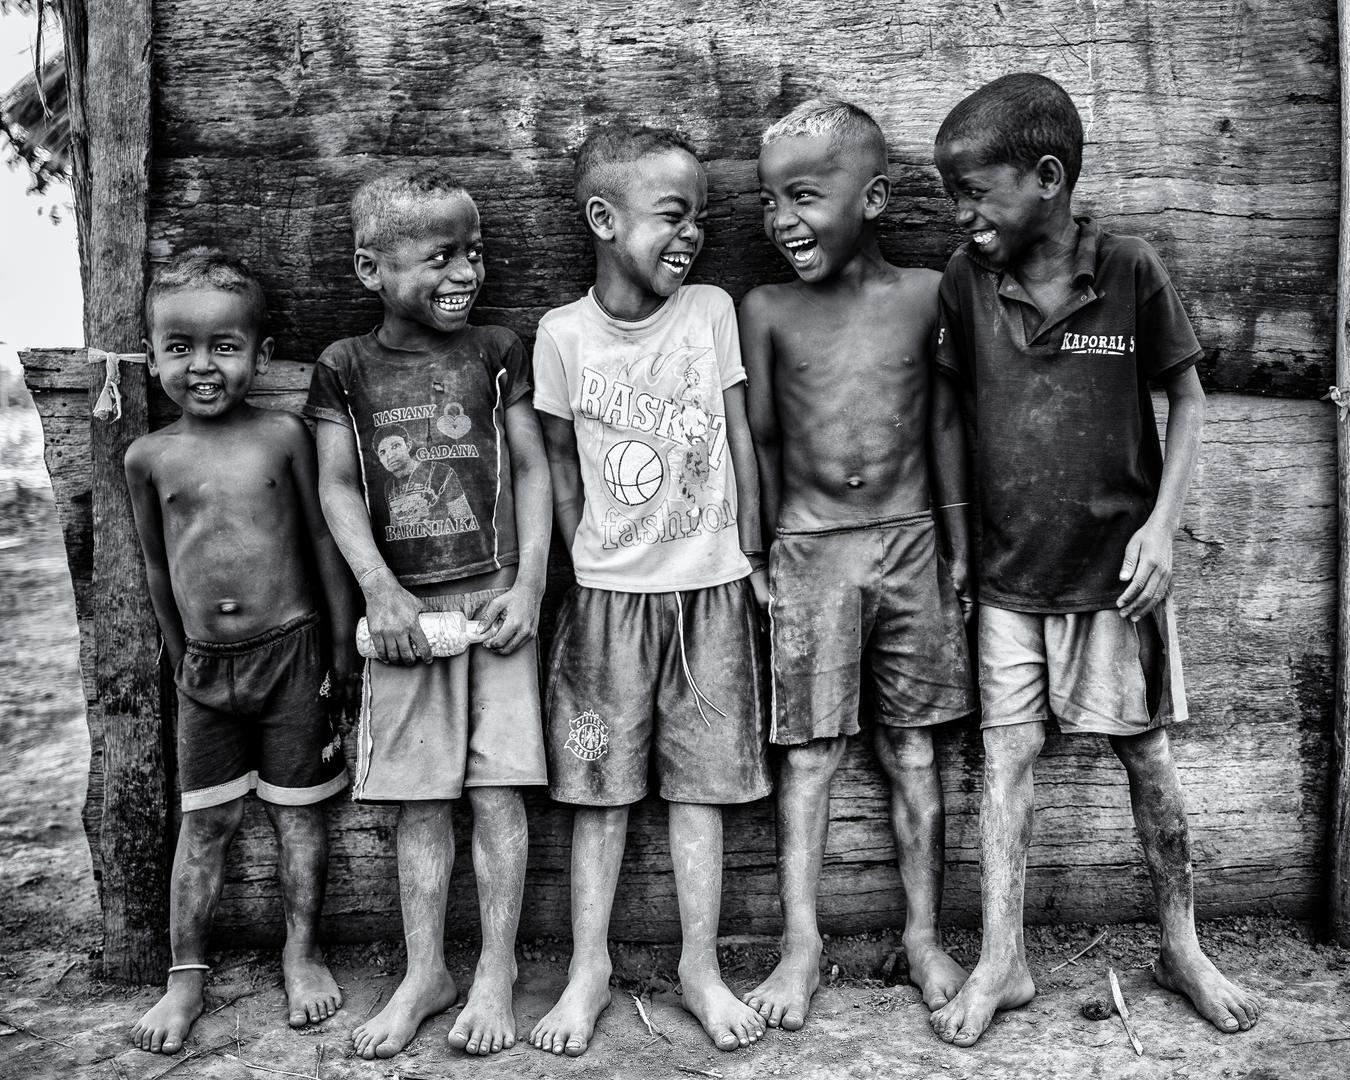 Smiling Children, © Marco Tagliarino, Crowd 2nd, FIX Photo Festival Awards